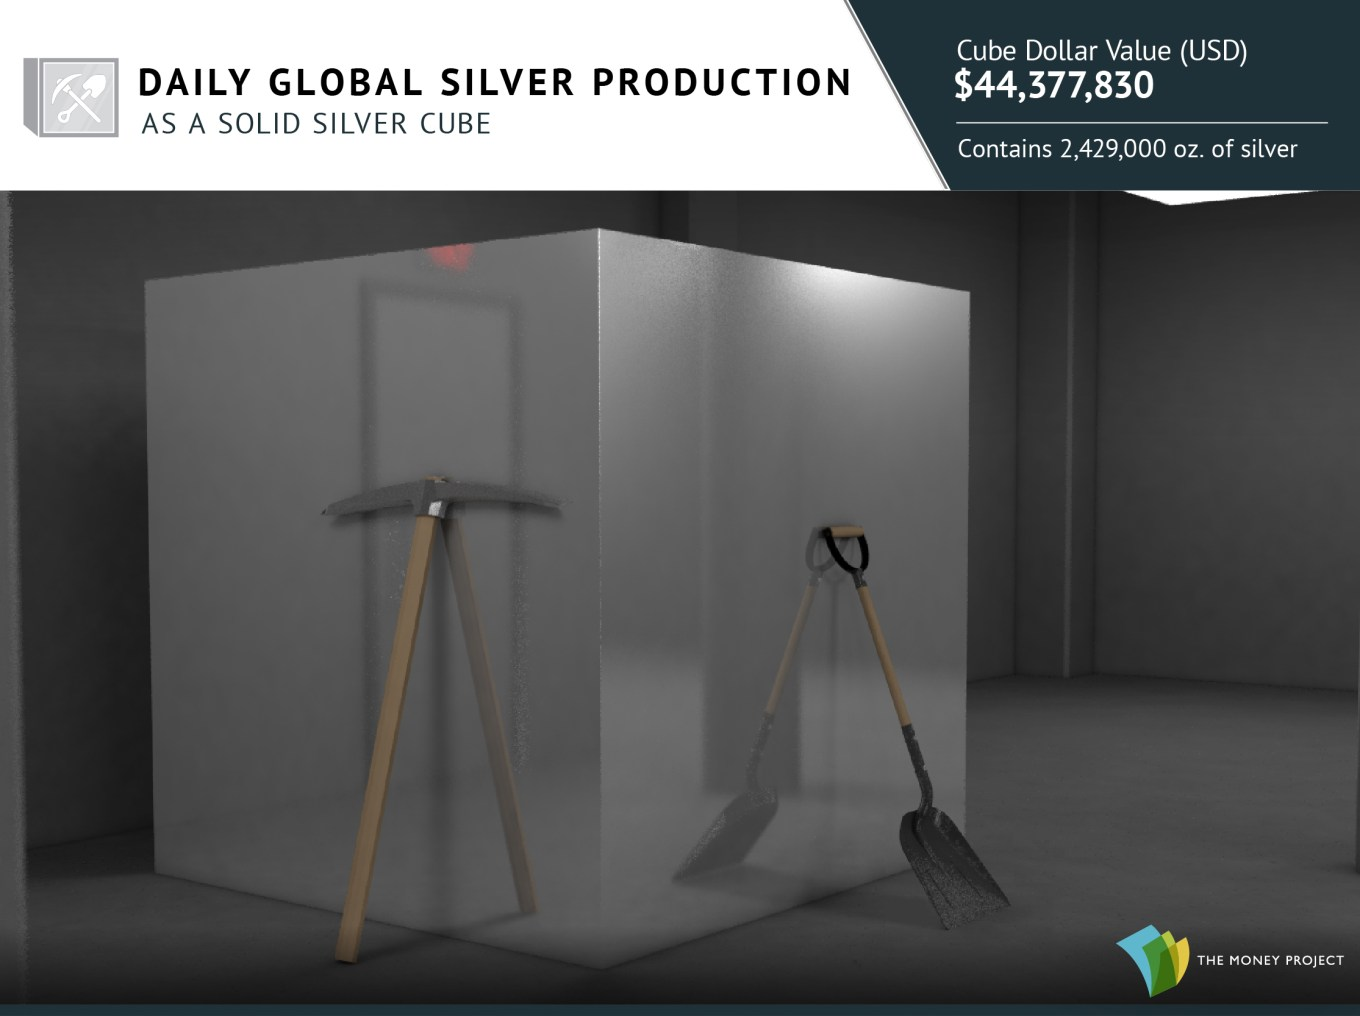 Daily Silver Production as a silver cube